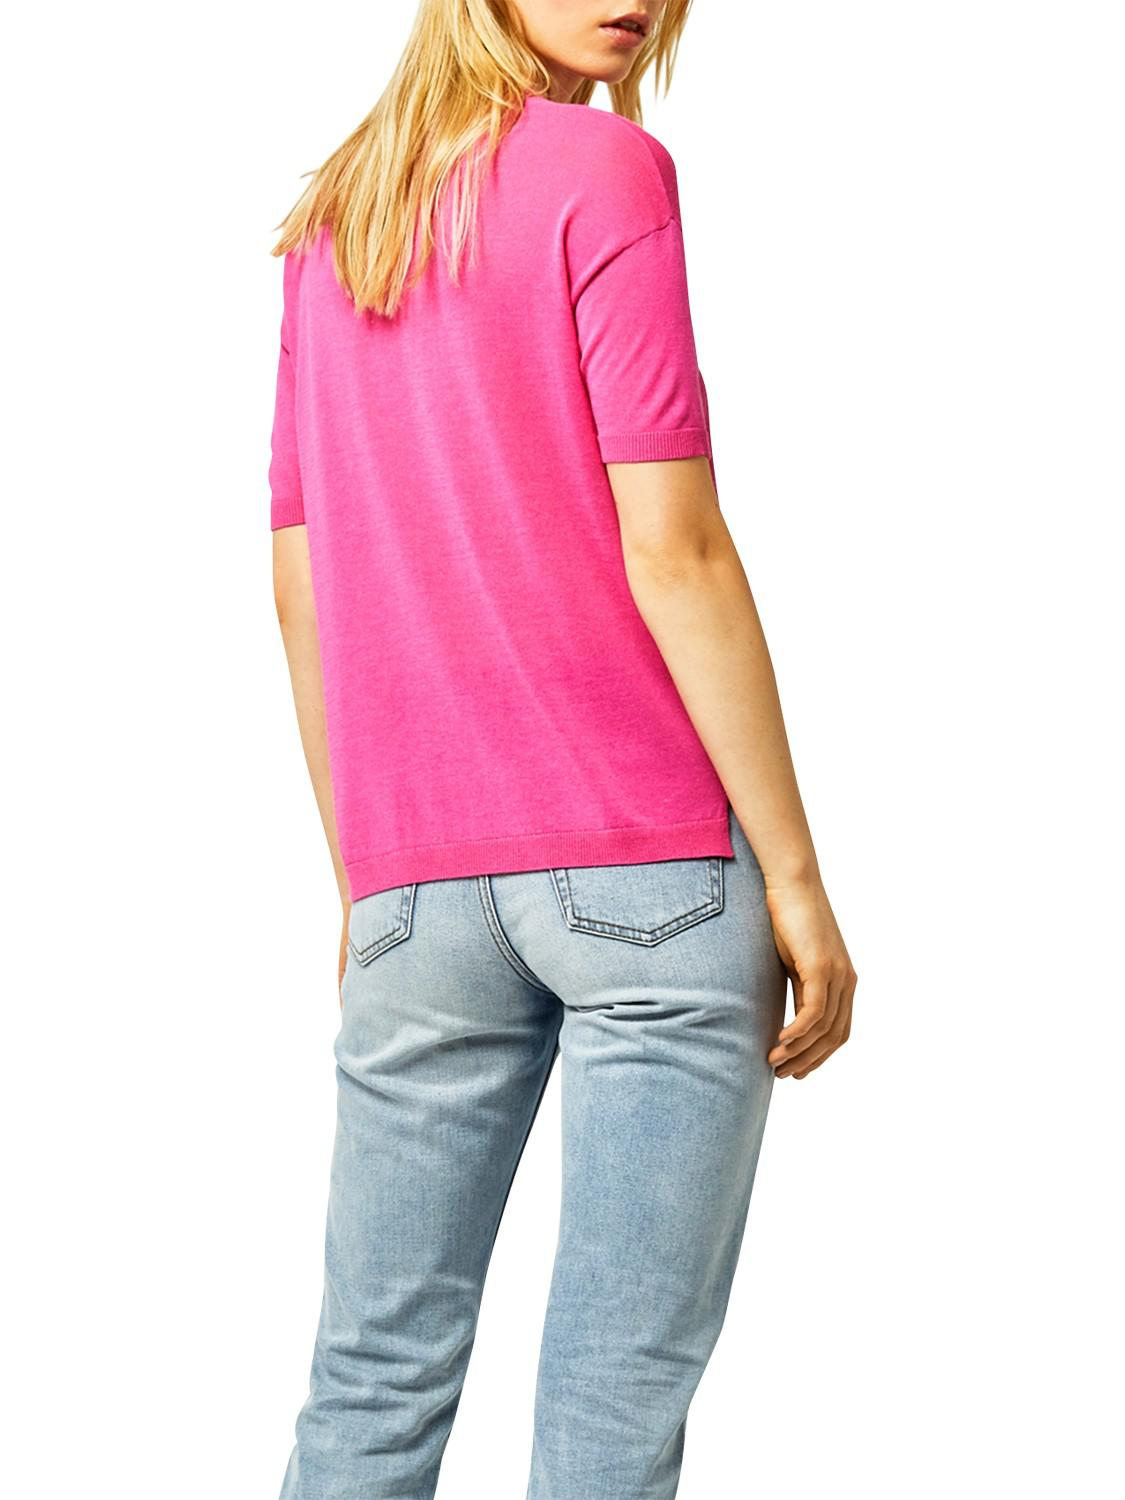 Warehouse Cotton Boxy Knitted Top in Bright Pink (Pink)